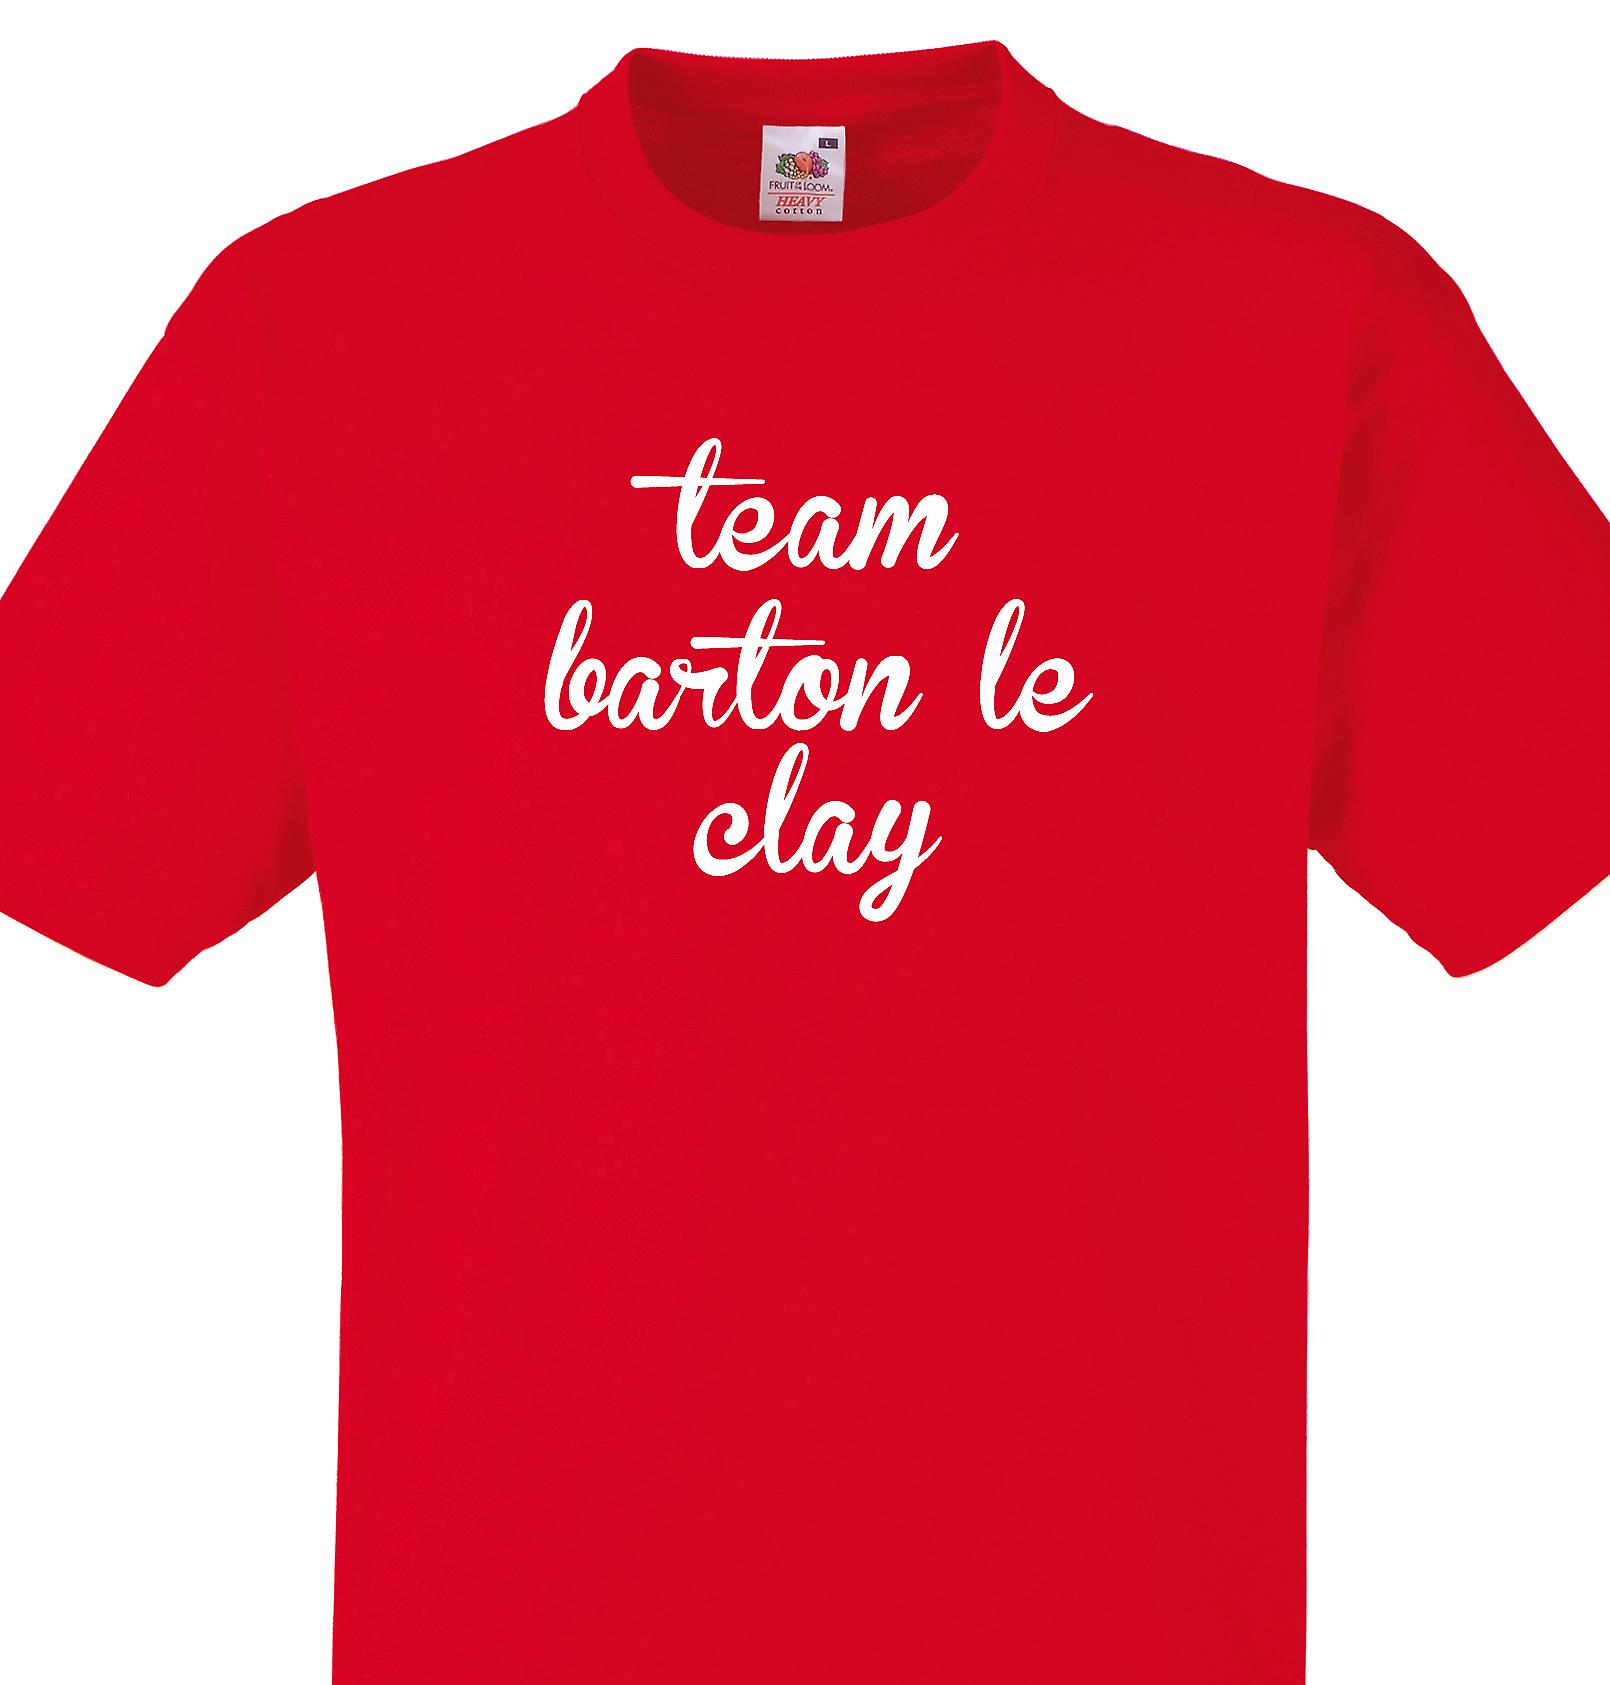 Team Barton le clay Red T shirt